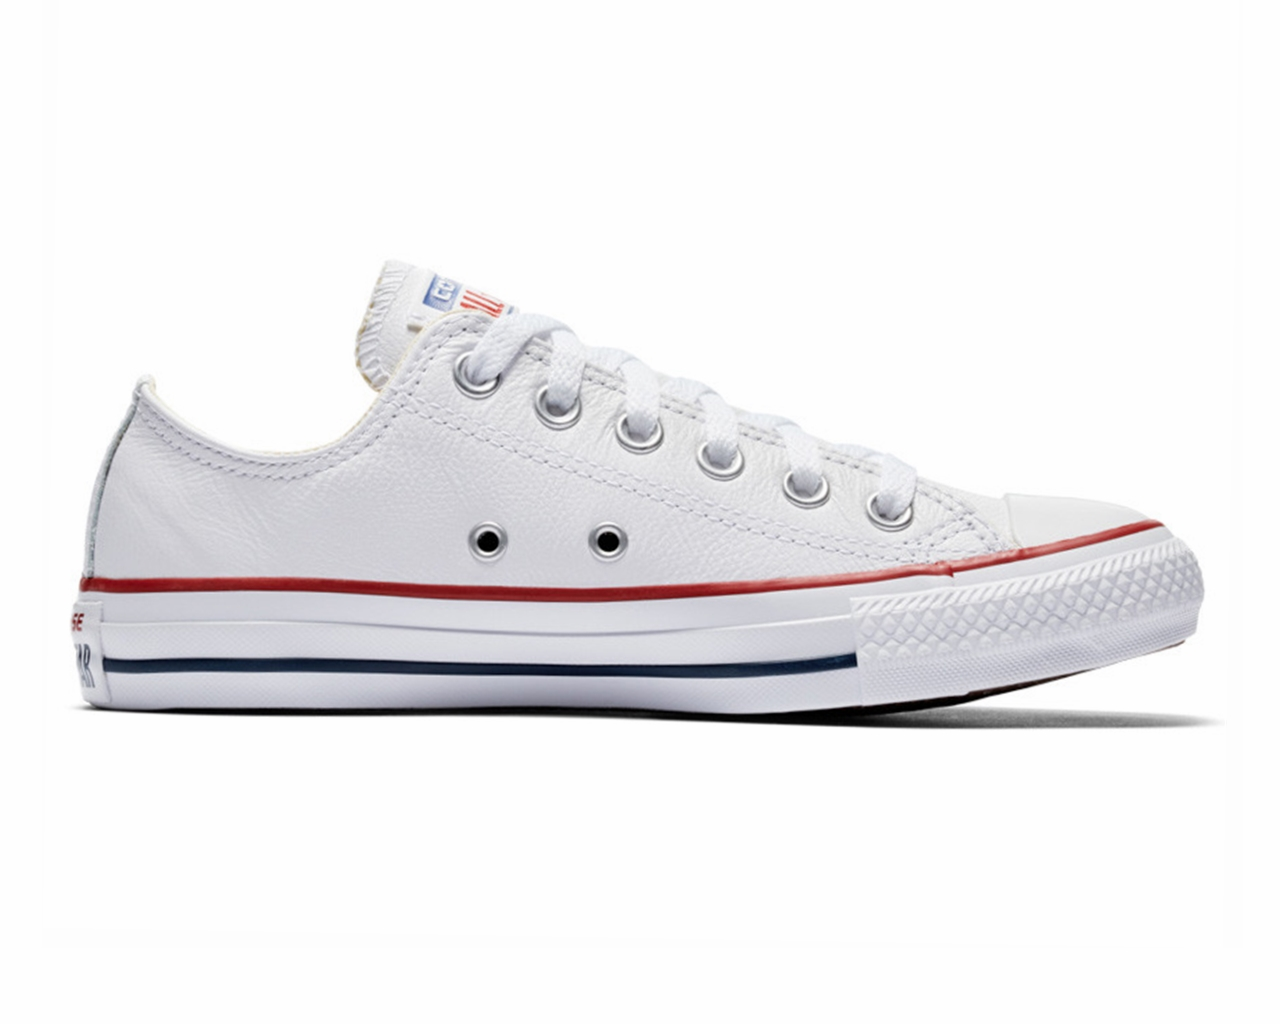 ab700a4506e Converse Chuck Taylor All Star OX 132173C Leather Men Trainers White ...